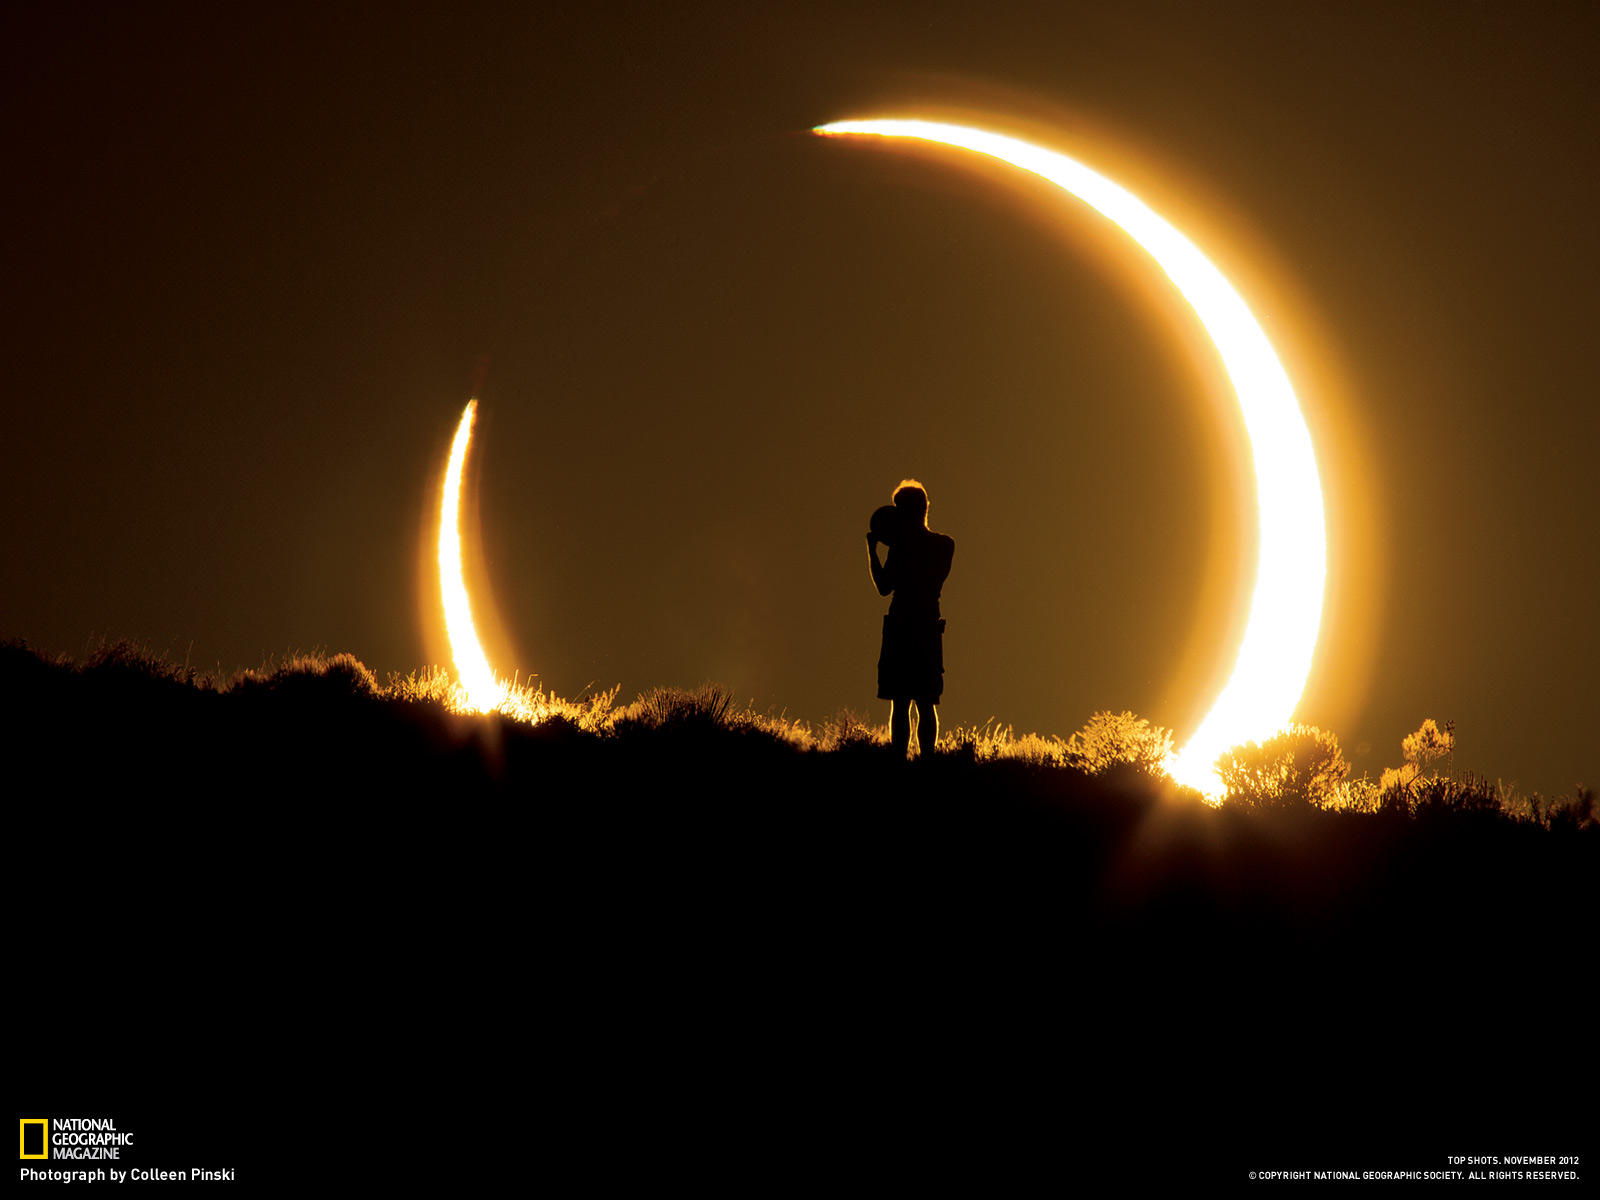 https://guidetoiceland.is/image/221869/x/0/solar-eclipse-in-iceland-on-20th-of-march-1.jpg